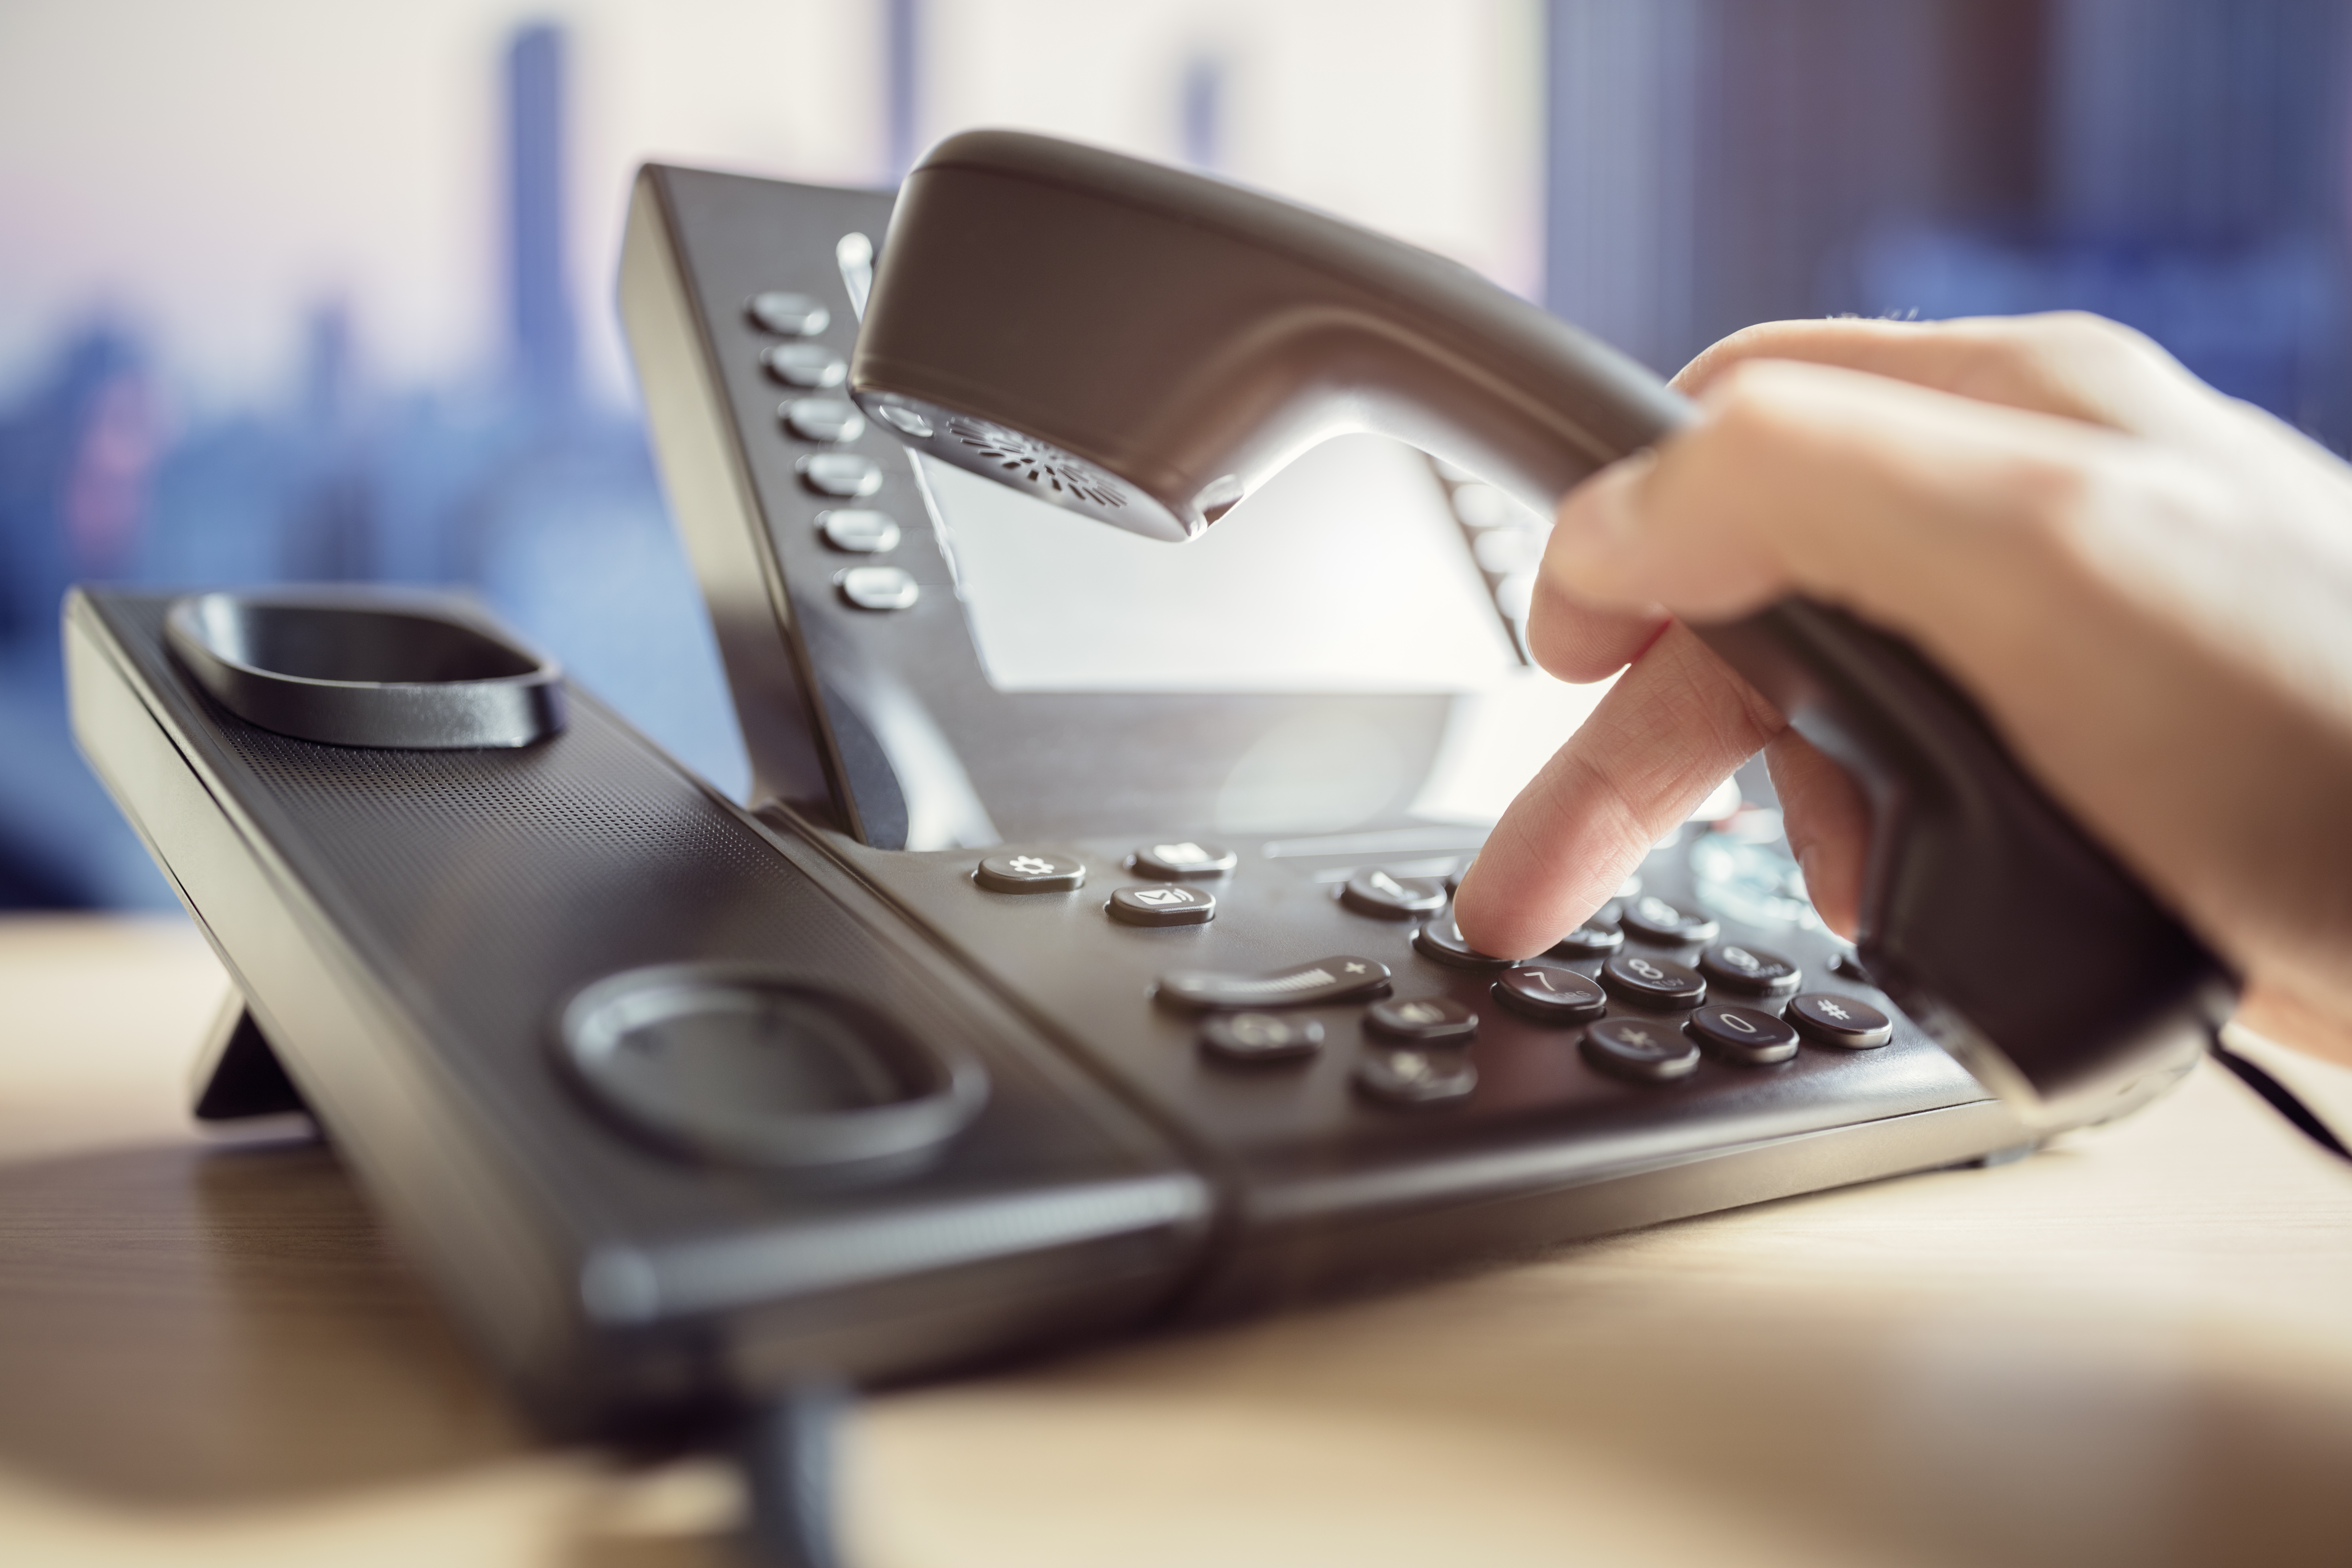 The value of IVR testing